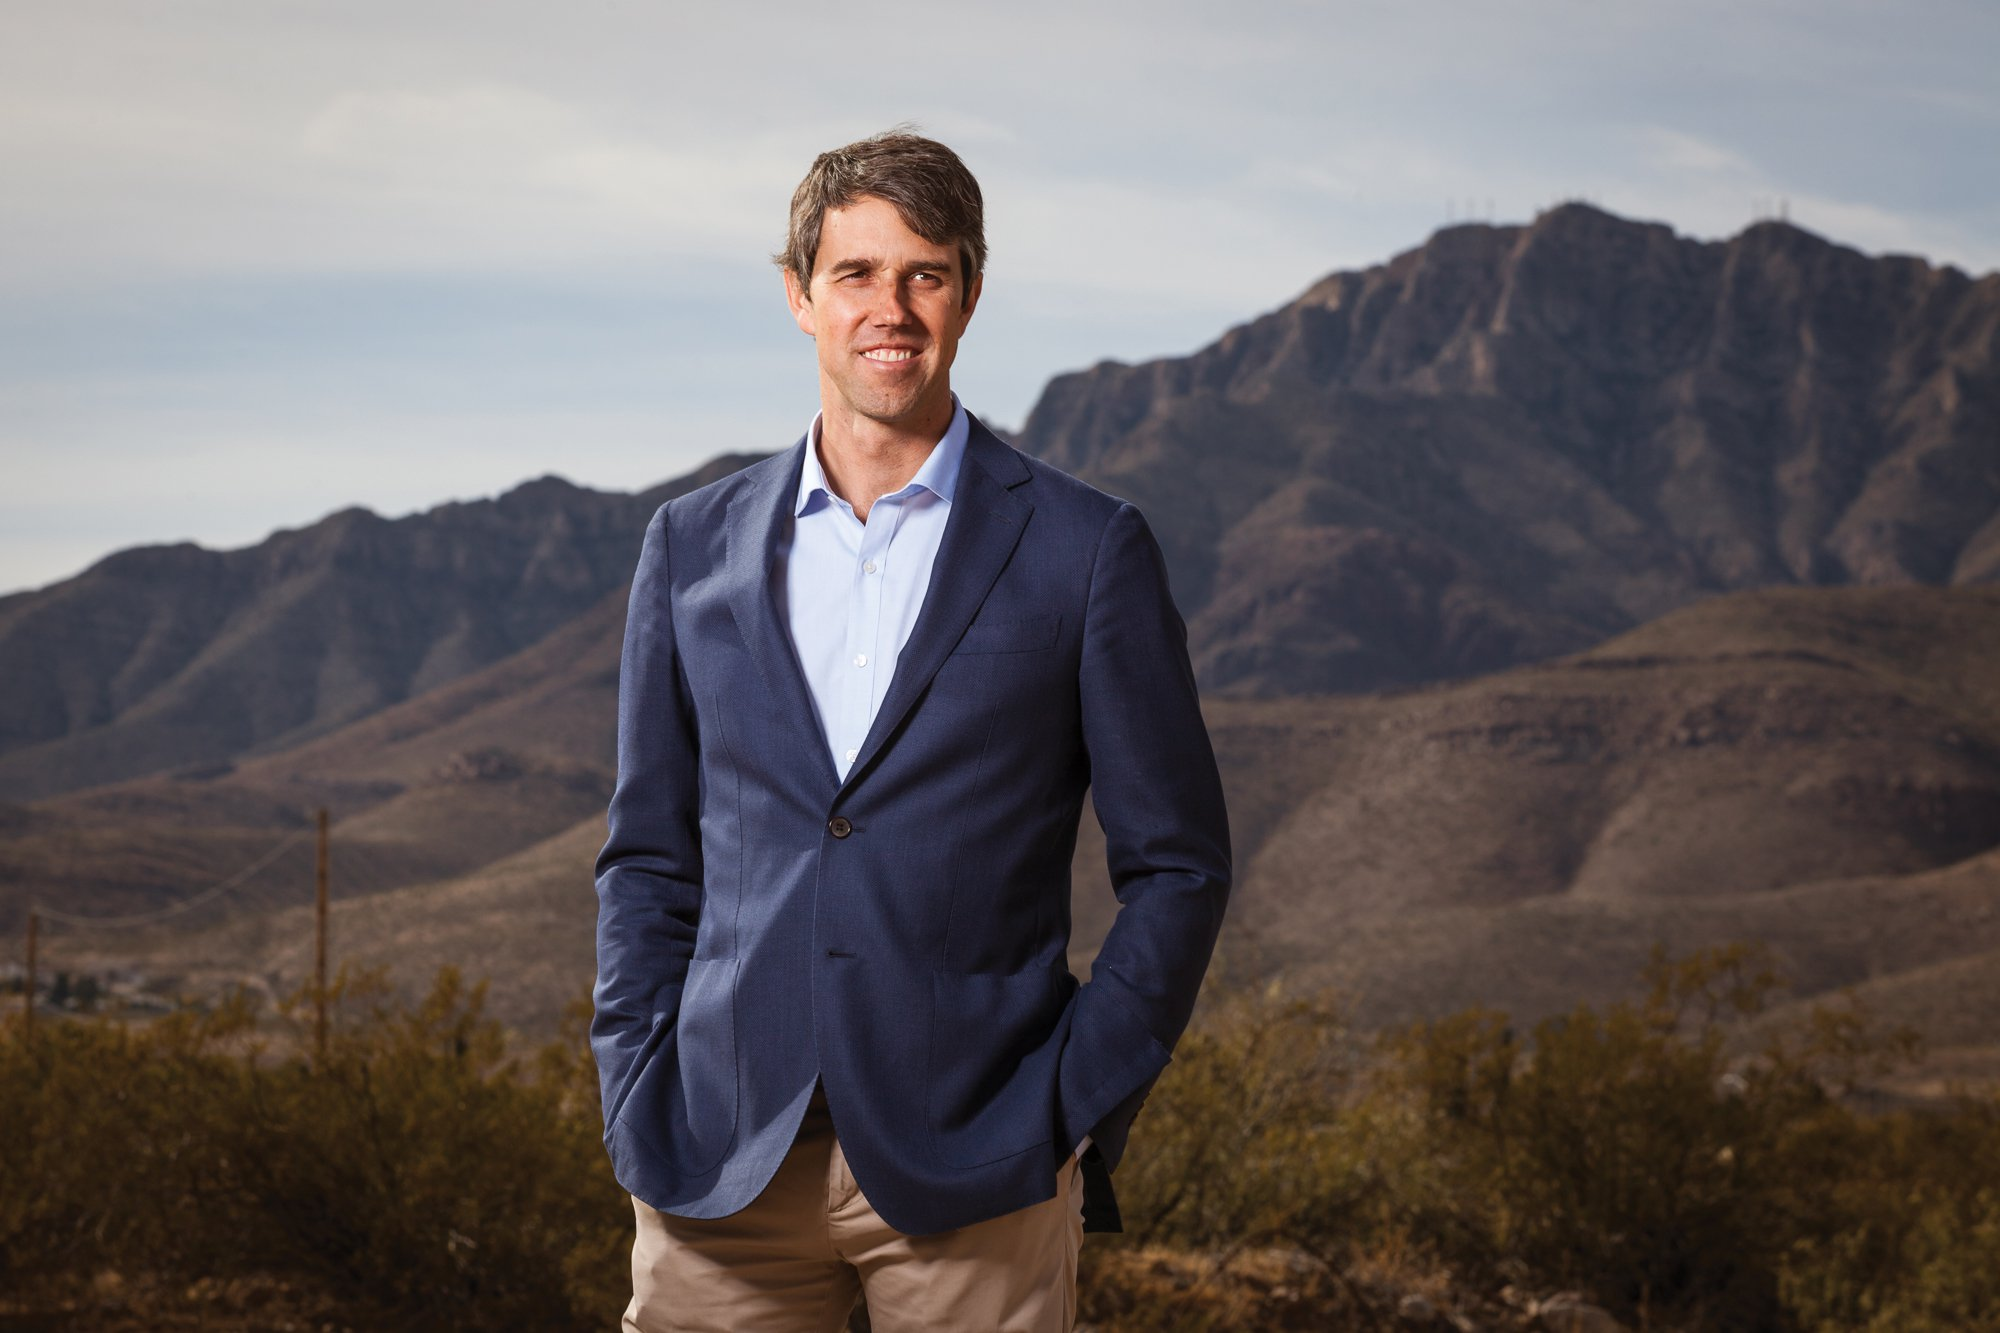 Beto O'Rourke stands in front of a mountainous background with his hands in his pockets, smiling.